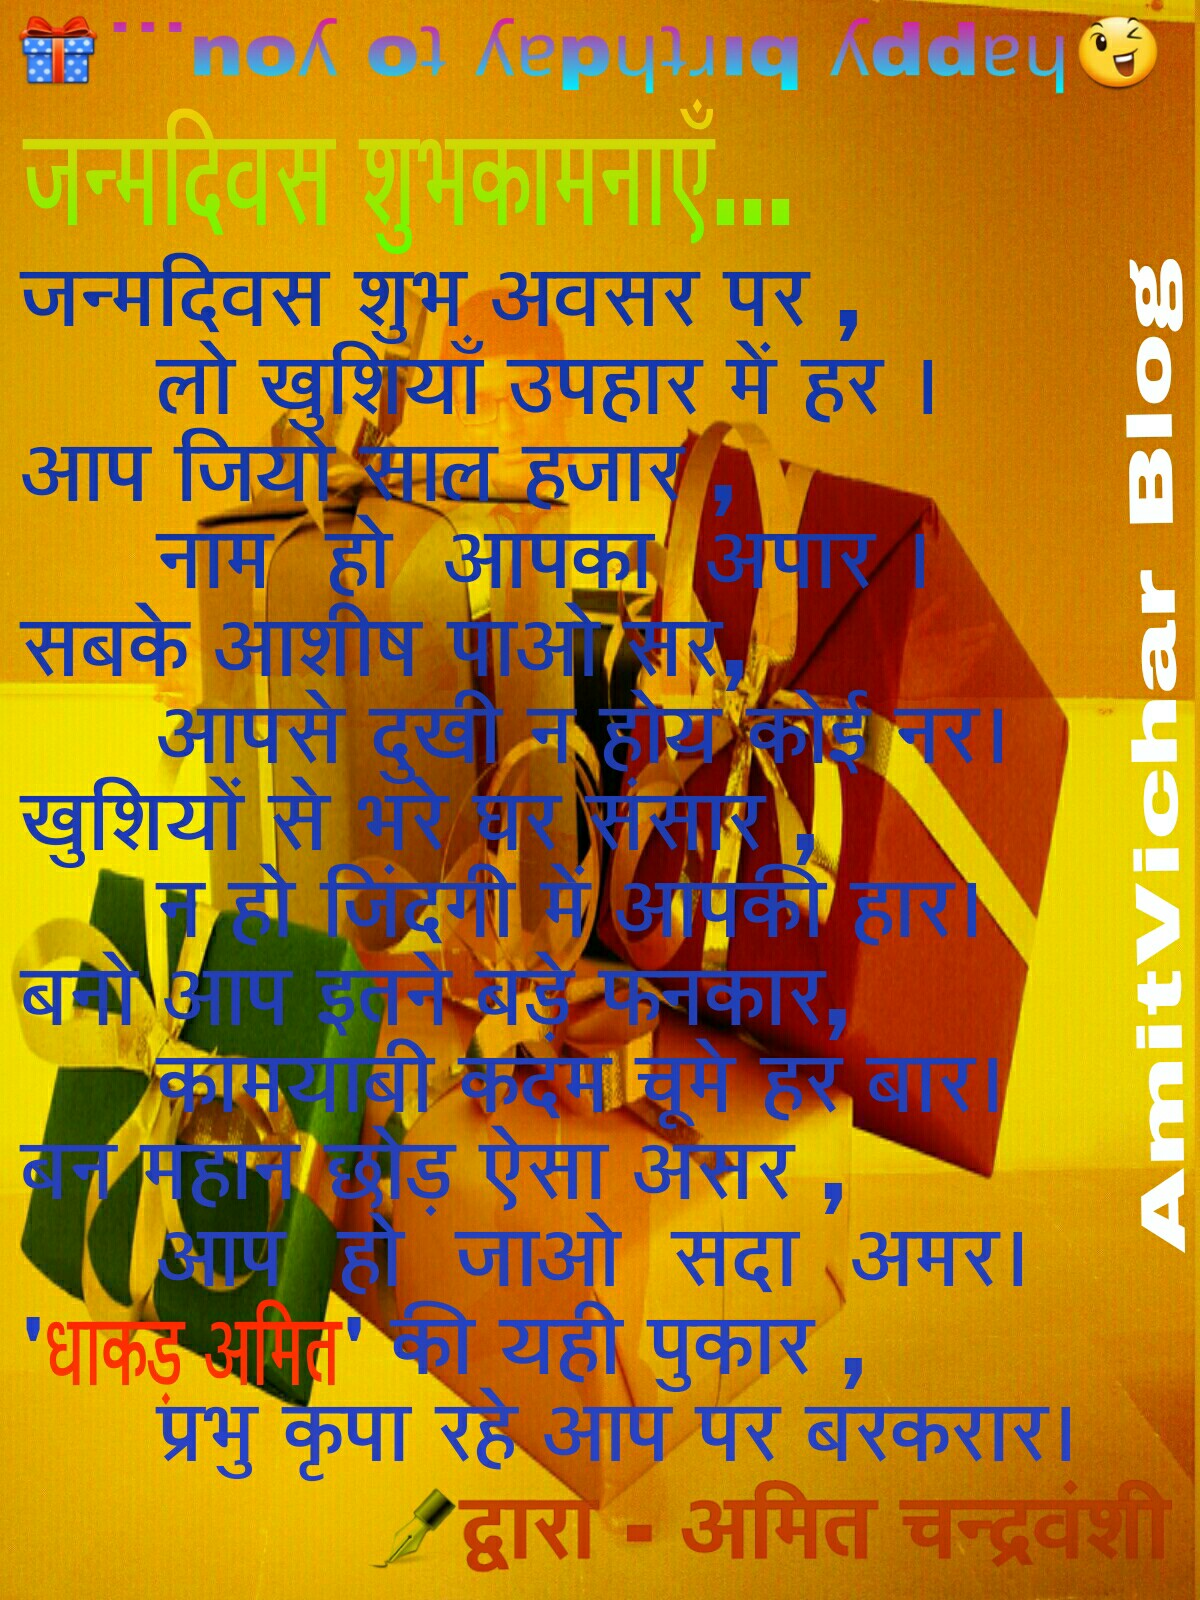 birthday wishes poem ; amit-chandrawanshi-birthday-poem-with-gift-mark-jpg